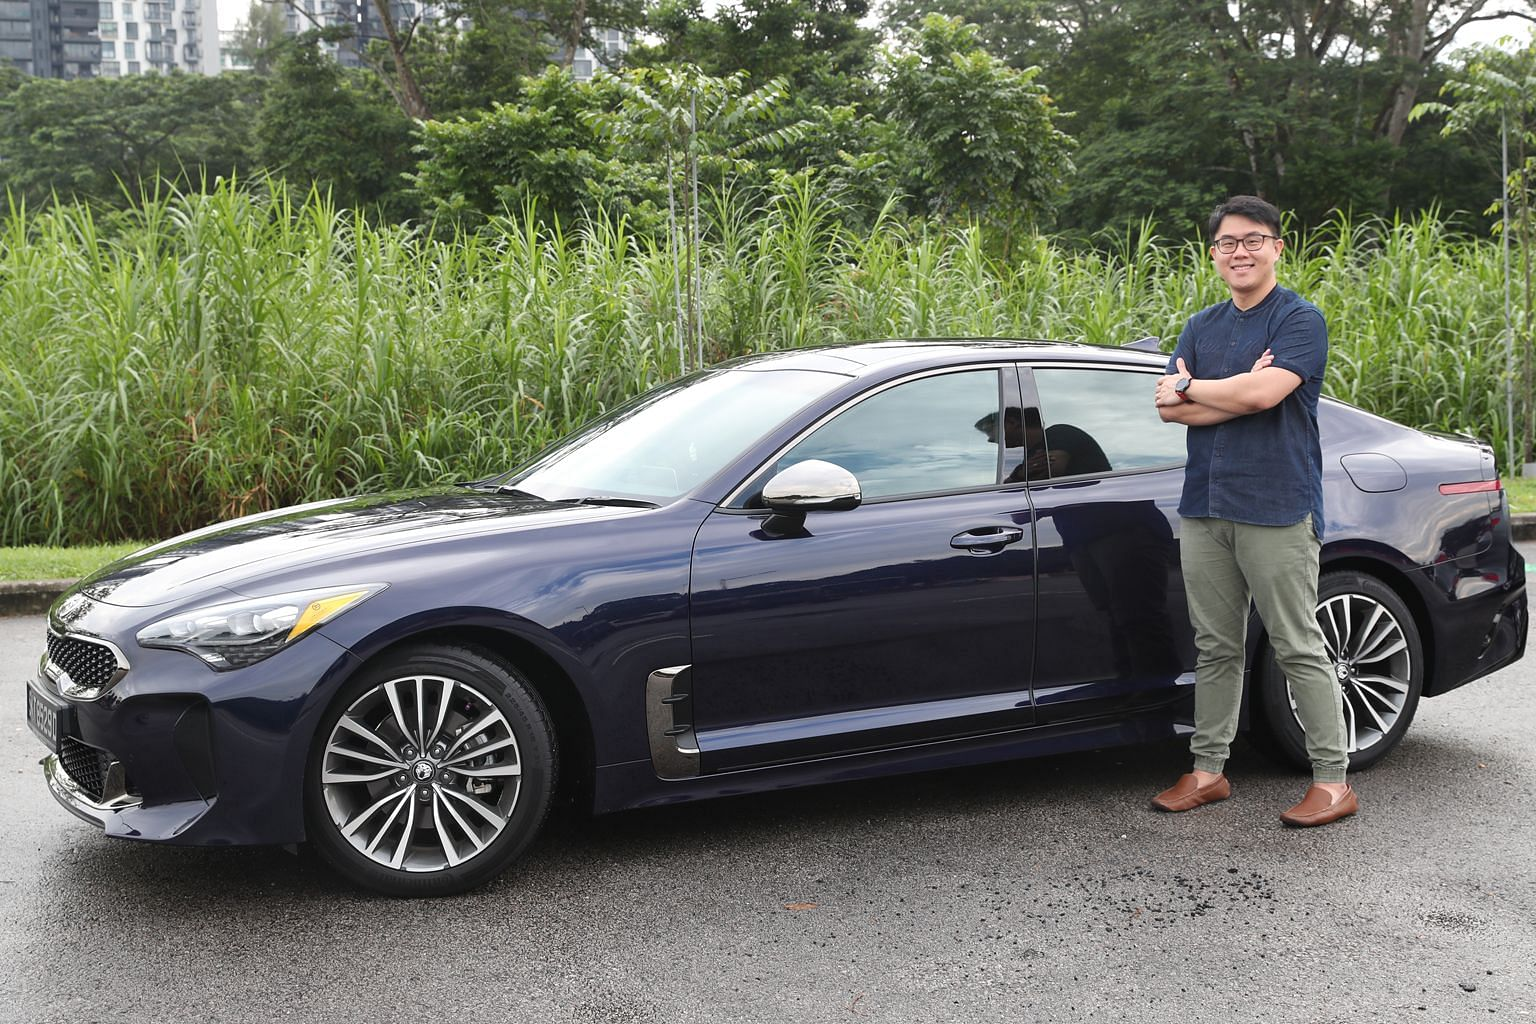 Pet food brand manager Chua Yew Teck became interested in the Kia Stinger after it won The Straits Times Car of the Year award last year.